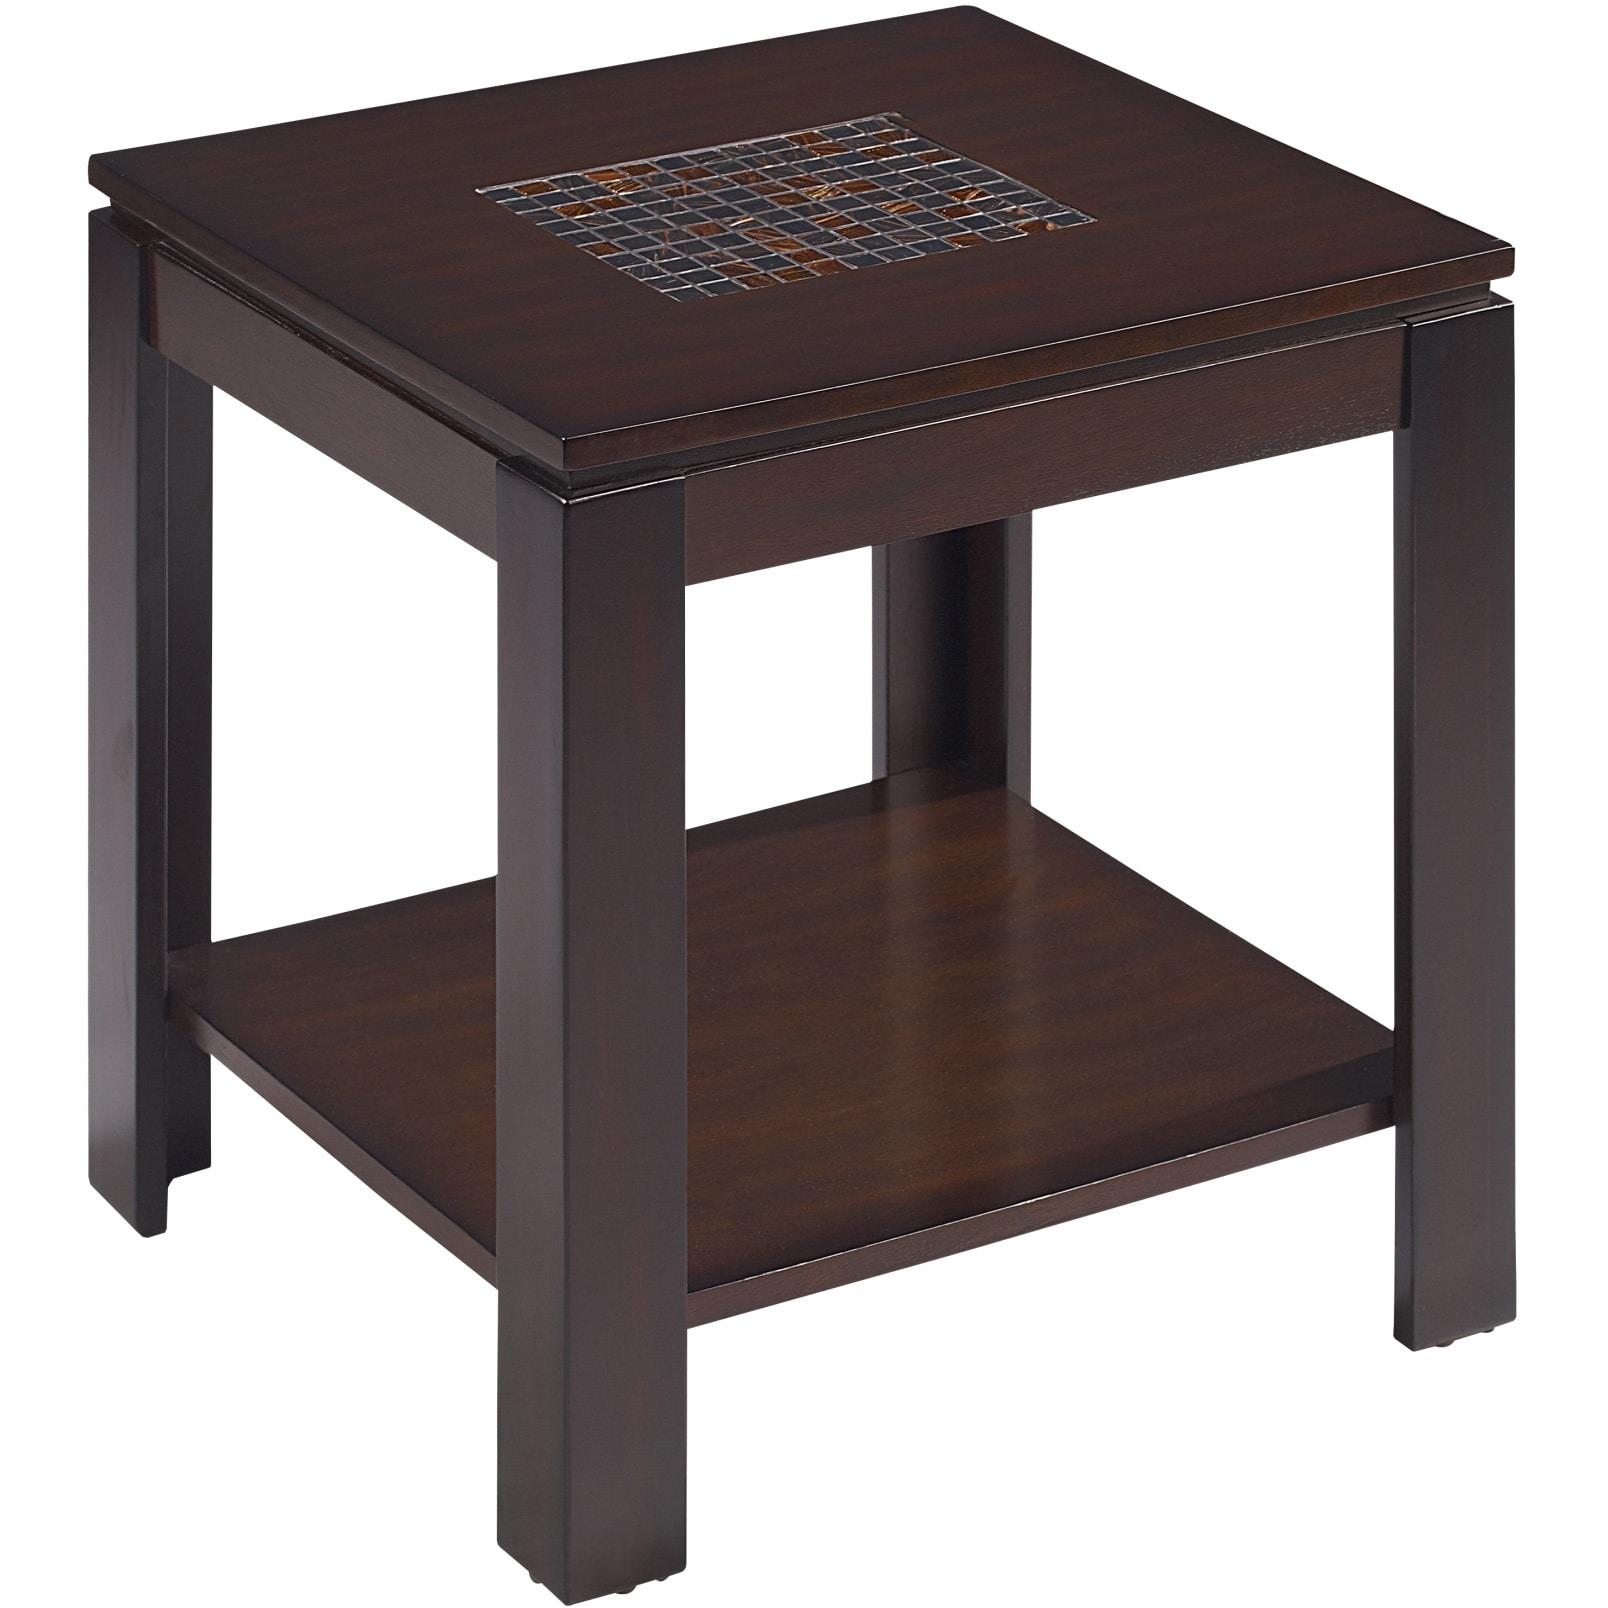 Emerald Mosaic Stone Contemporary End Table (Mosaic Stone...